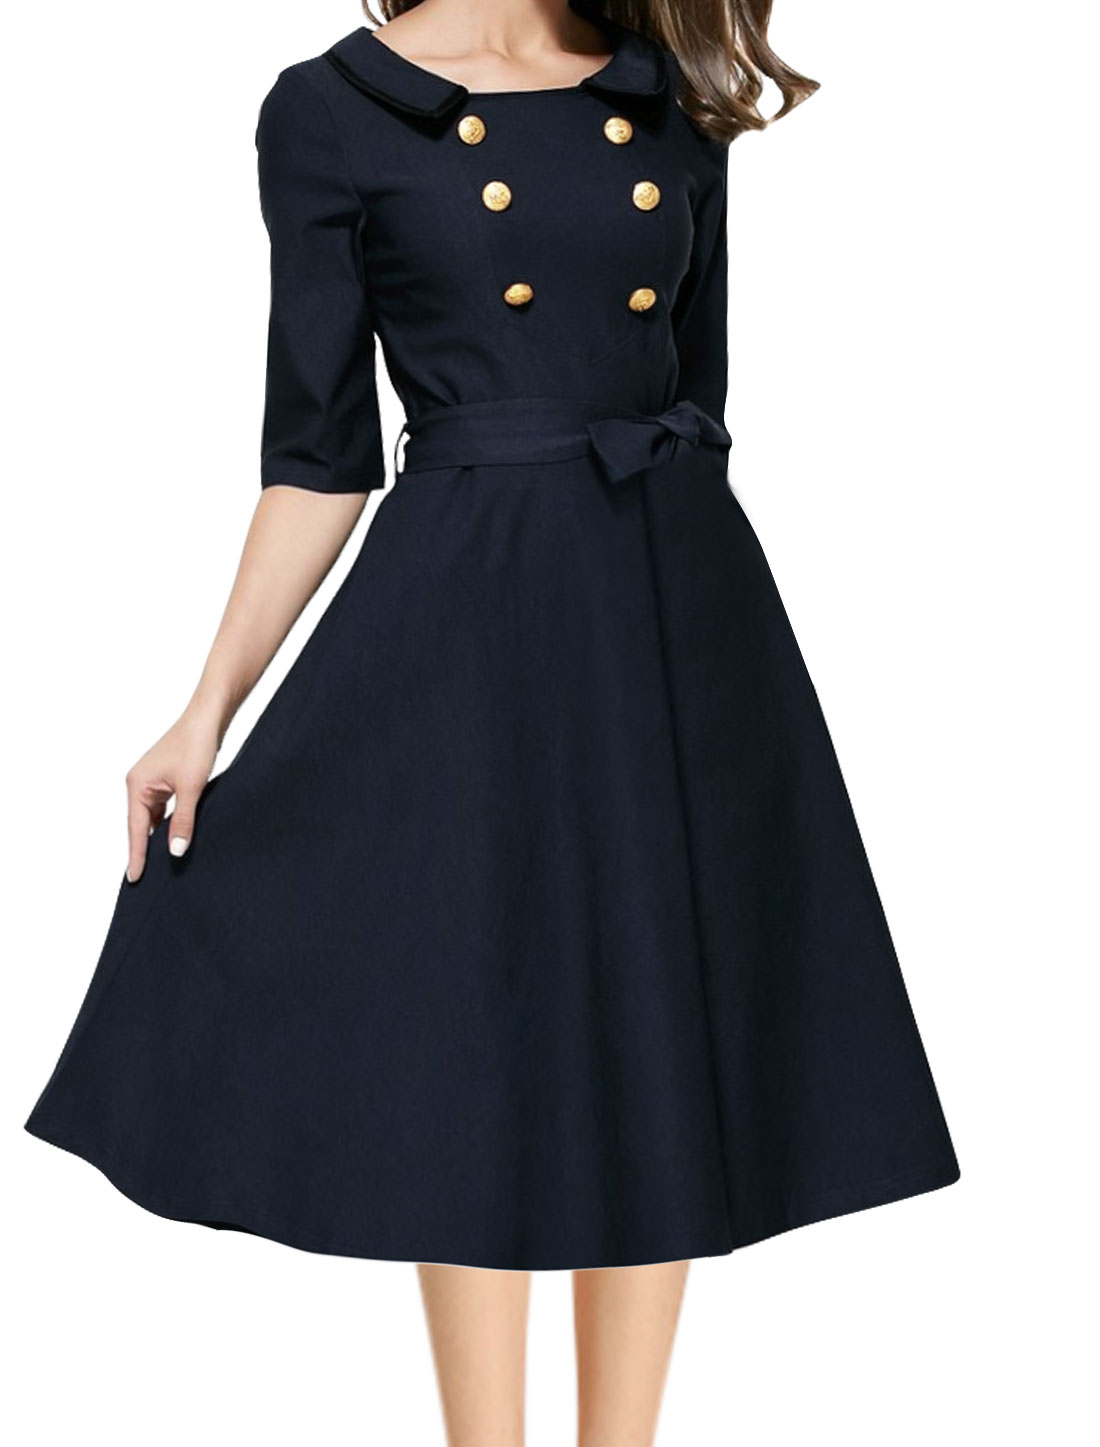 Women Layered Collar Buttons Decor Waist String A Line Dress Blue S